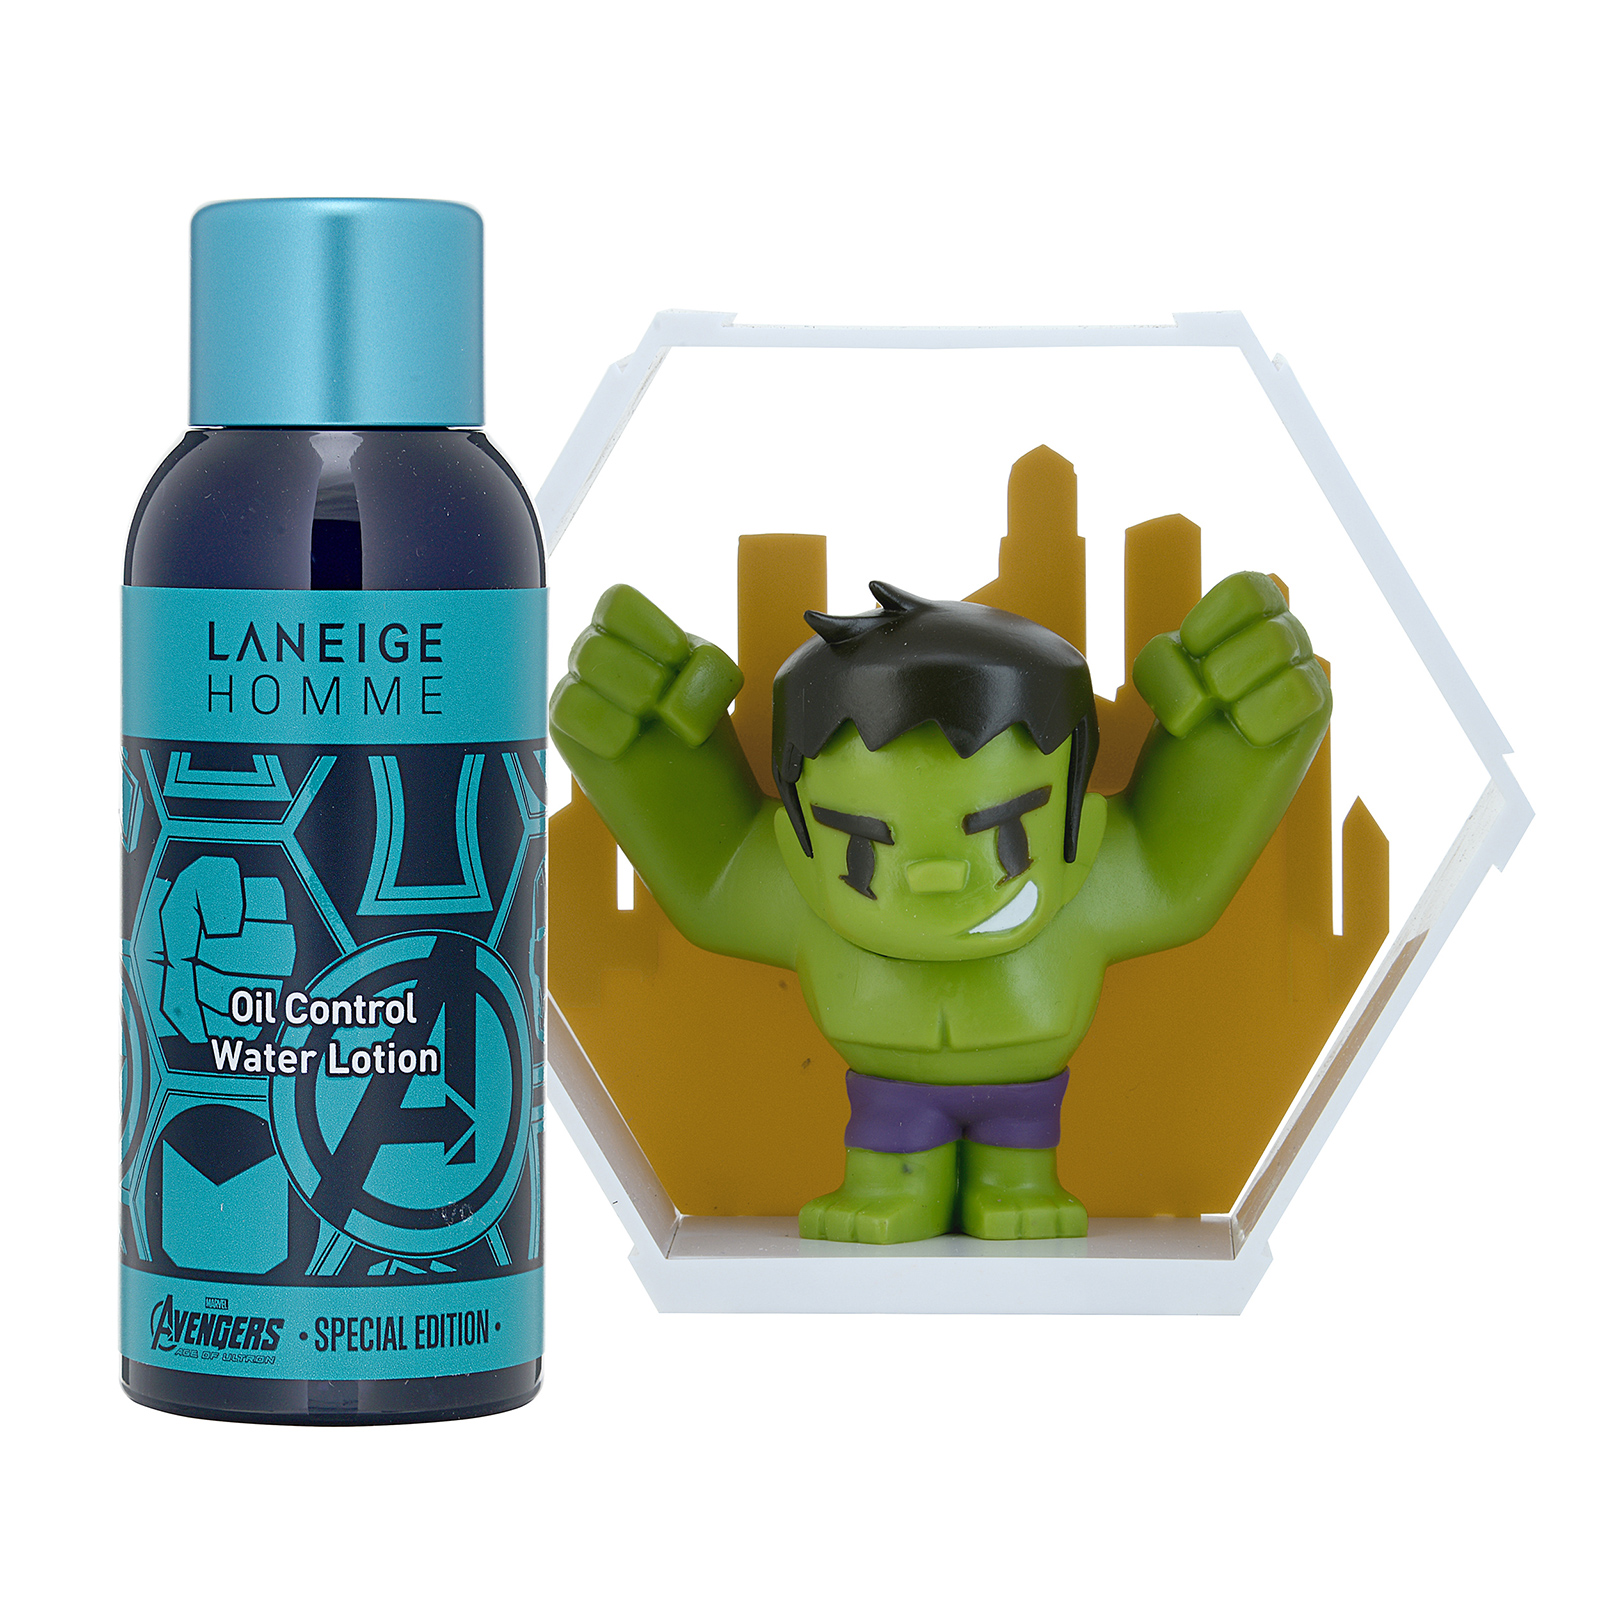 Laneige Homme Homme Oil Control Water Lotion Set with Hulk figure  1set, 2pcs ALN0100187-000-00